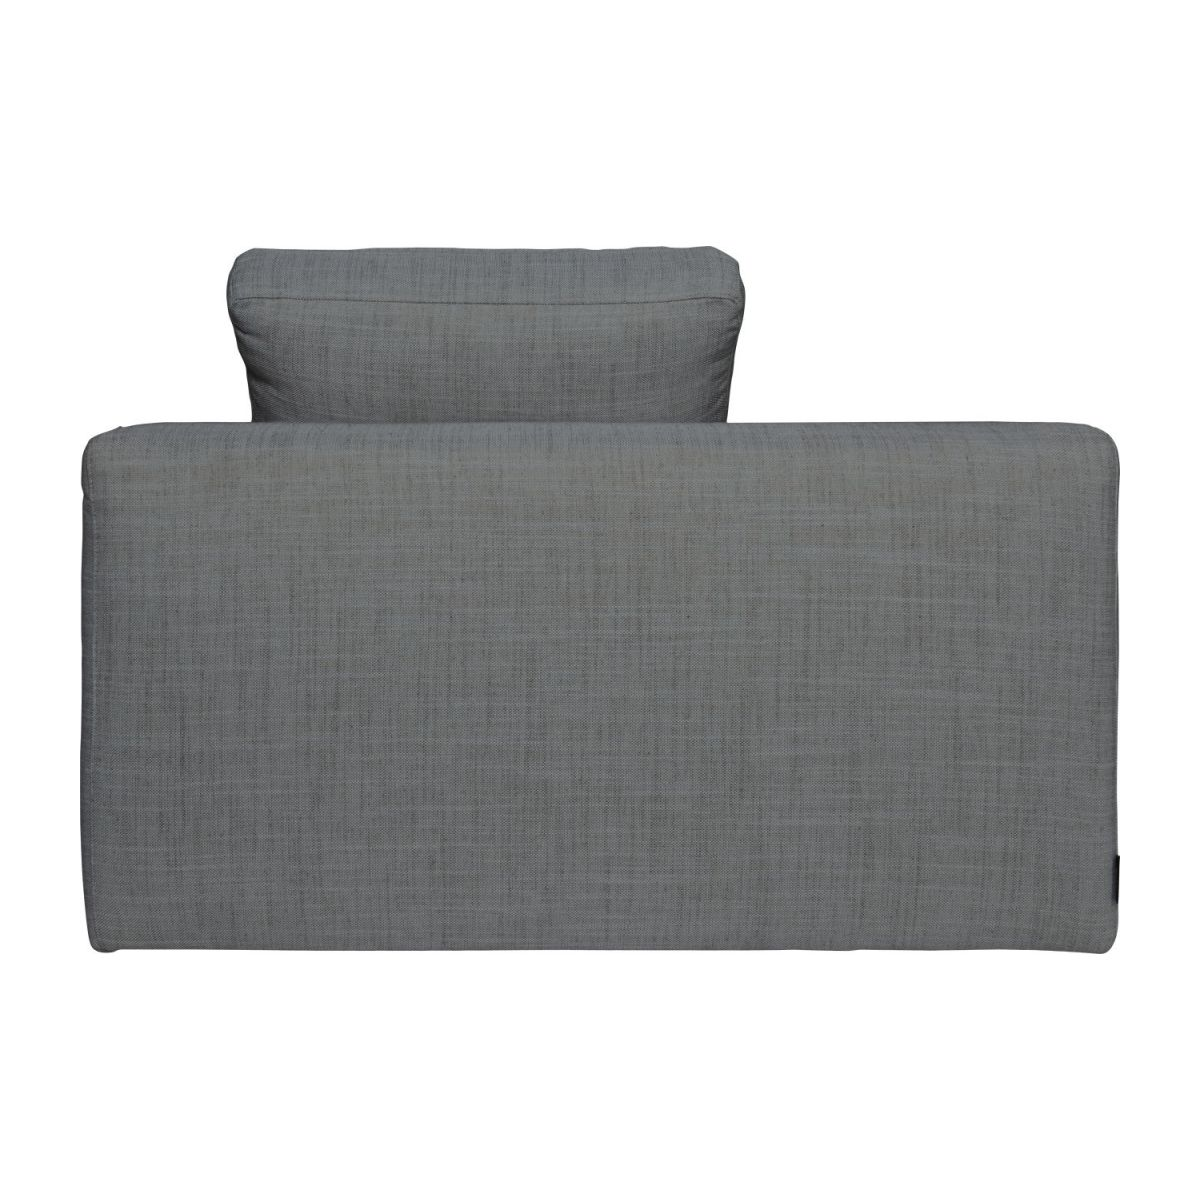 Meridienne Convertible Cyrus Canapés Méridienne Méridienne Convertible Gris Tissu